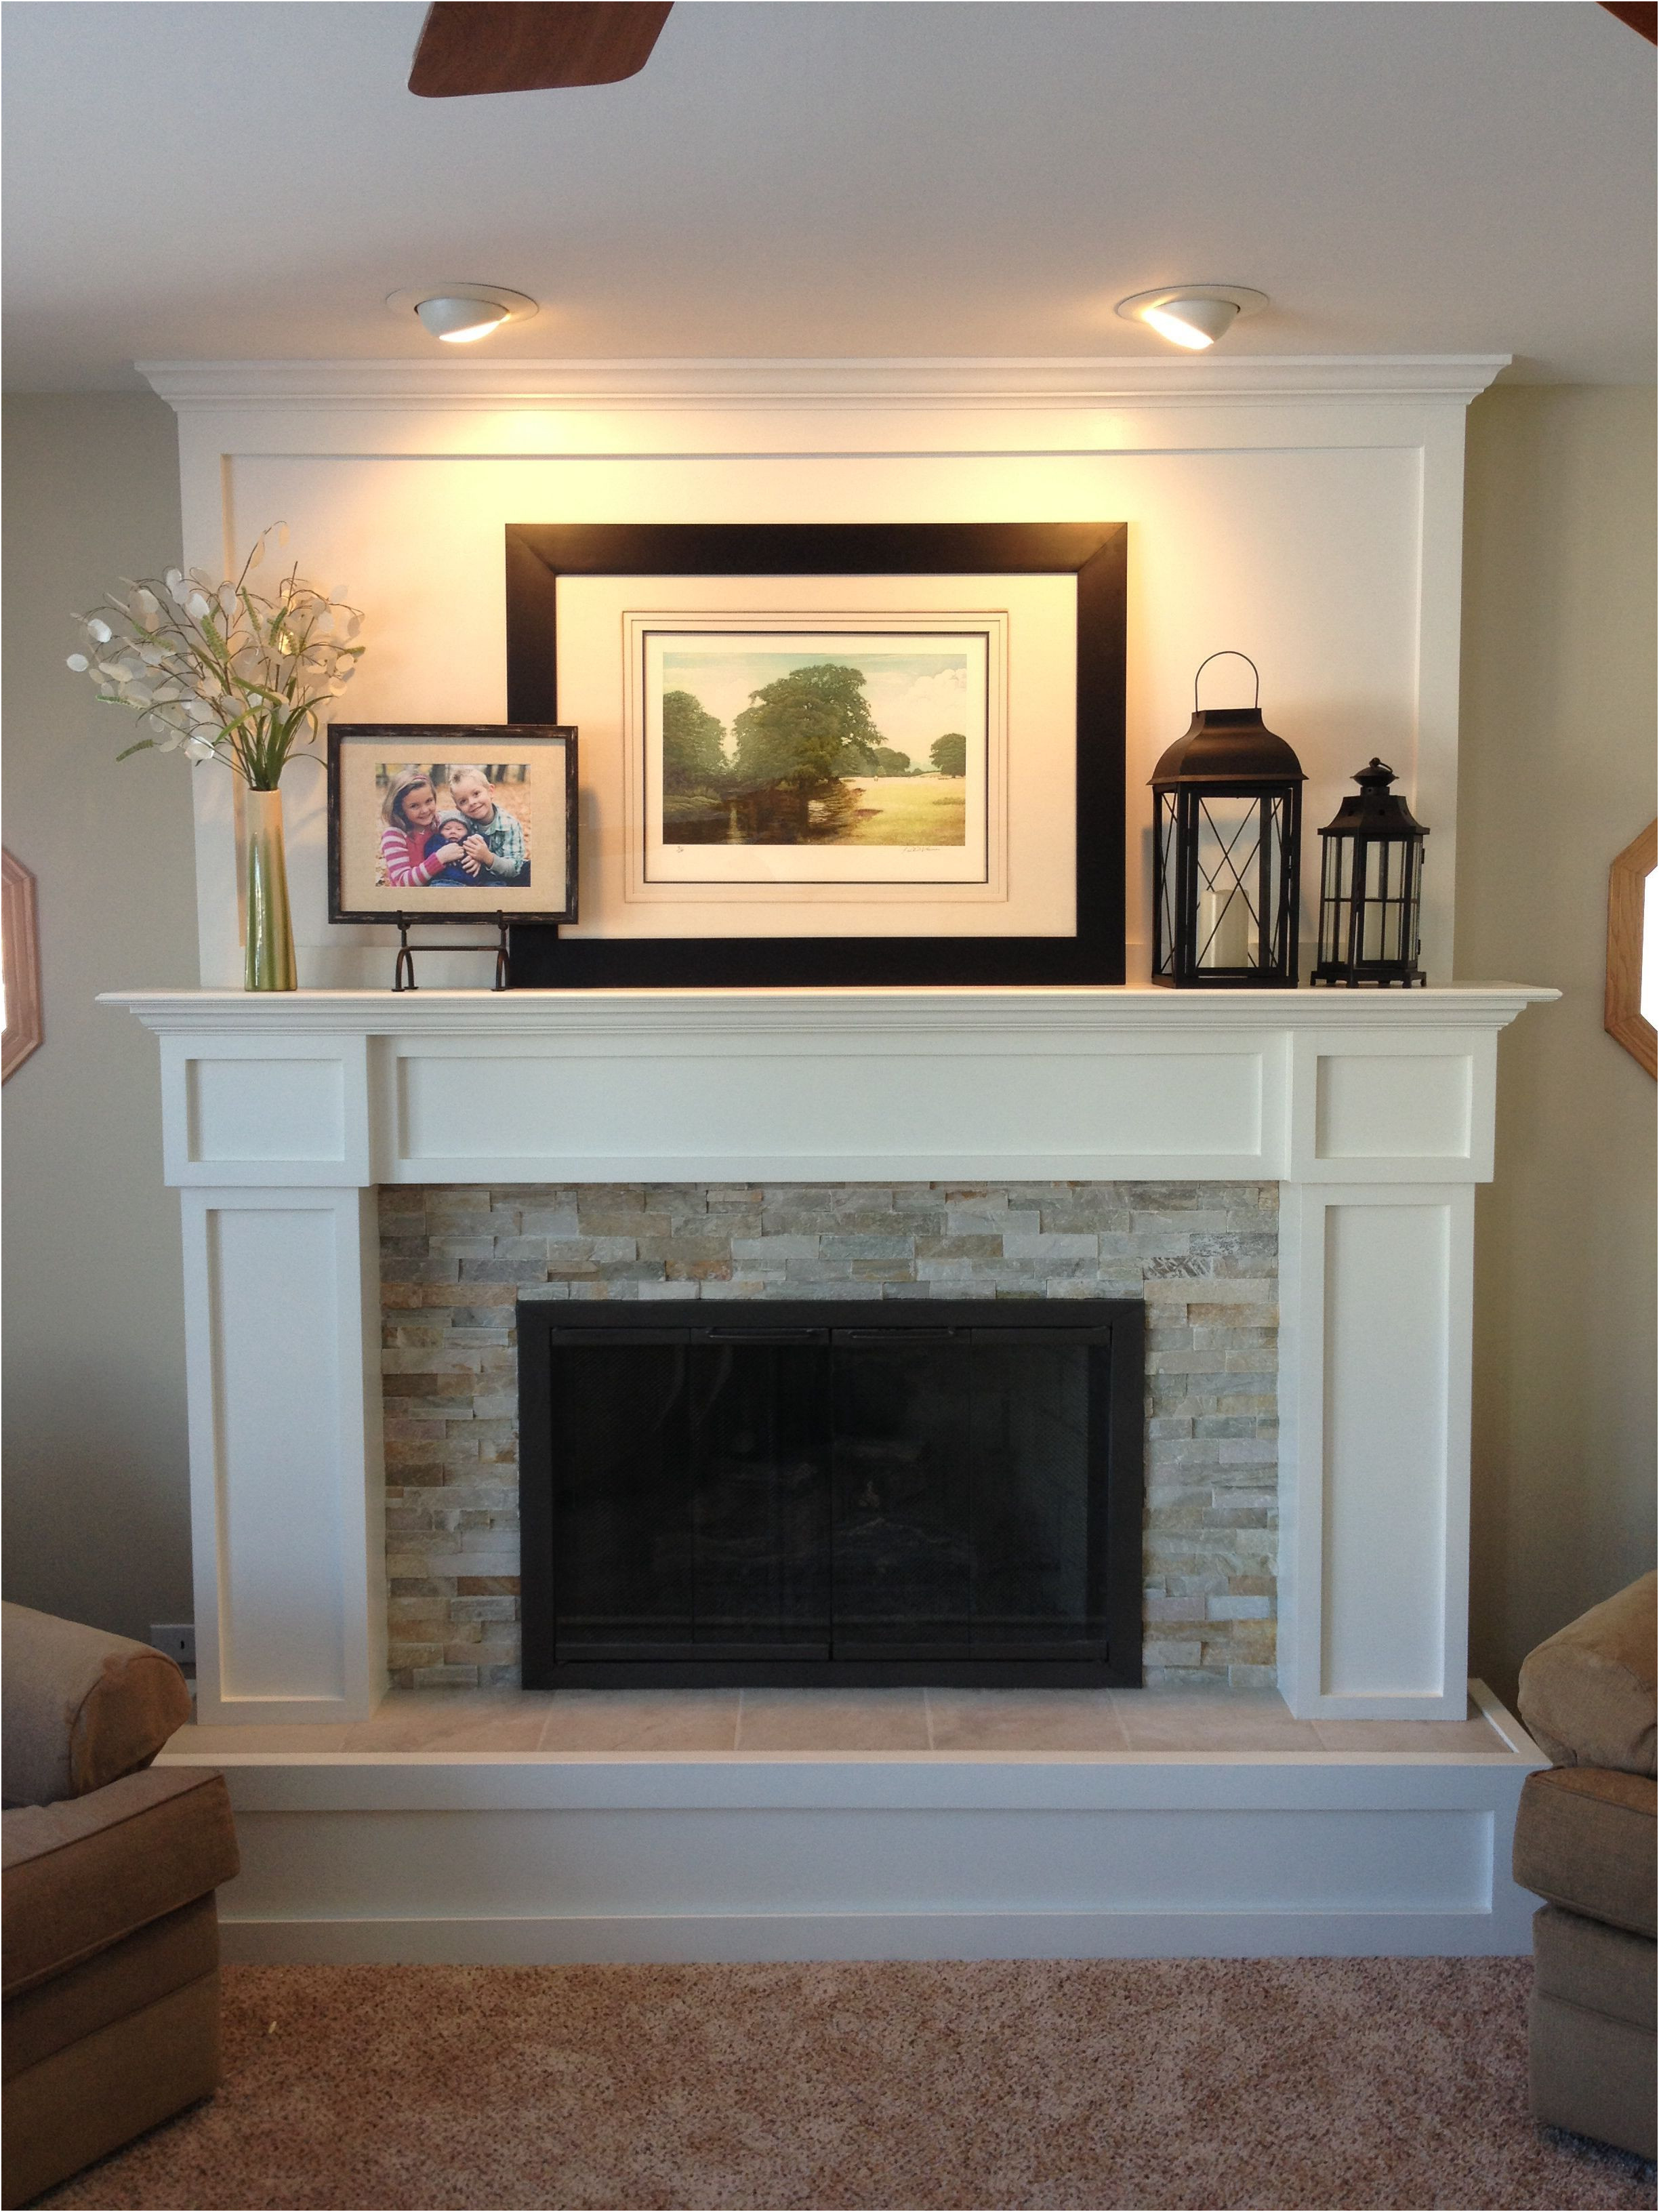 Ideas for Painting Fireplace Fresh 9 Easy and Cheap Cool Ideas Fireplace Drawing Chairs